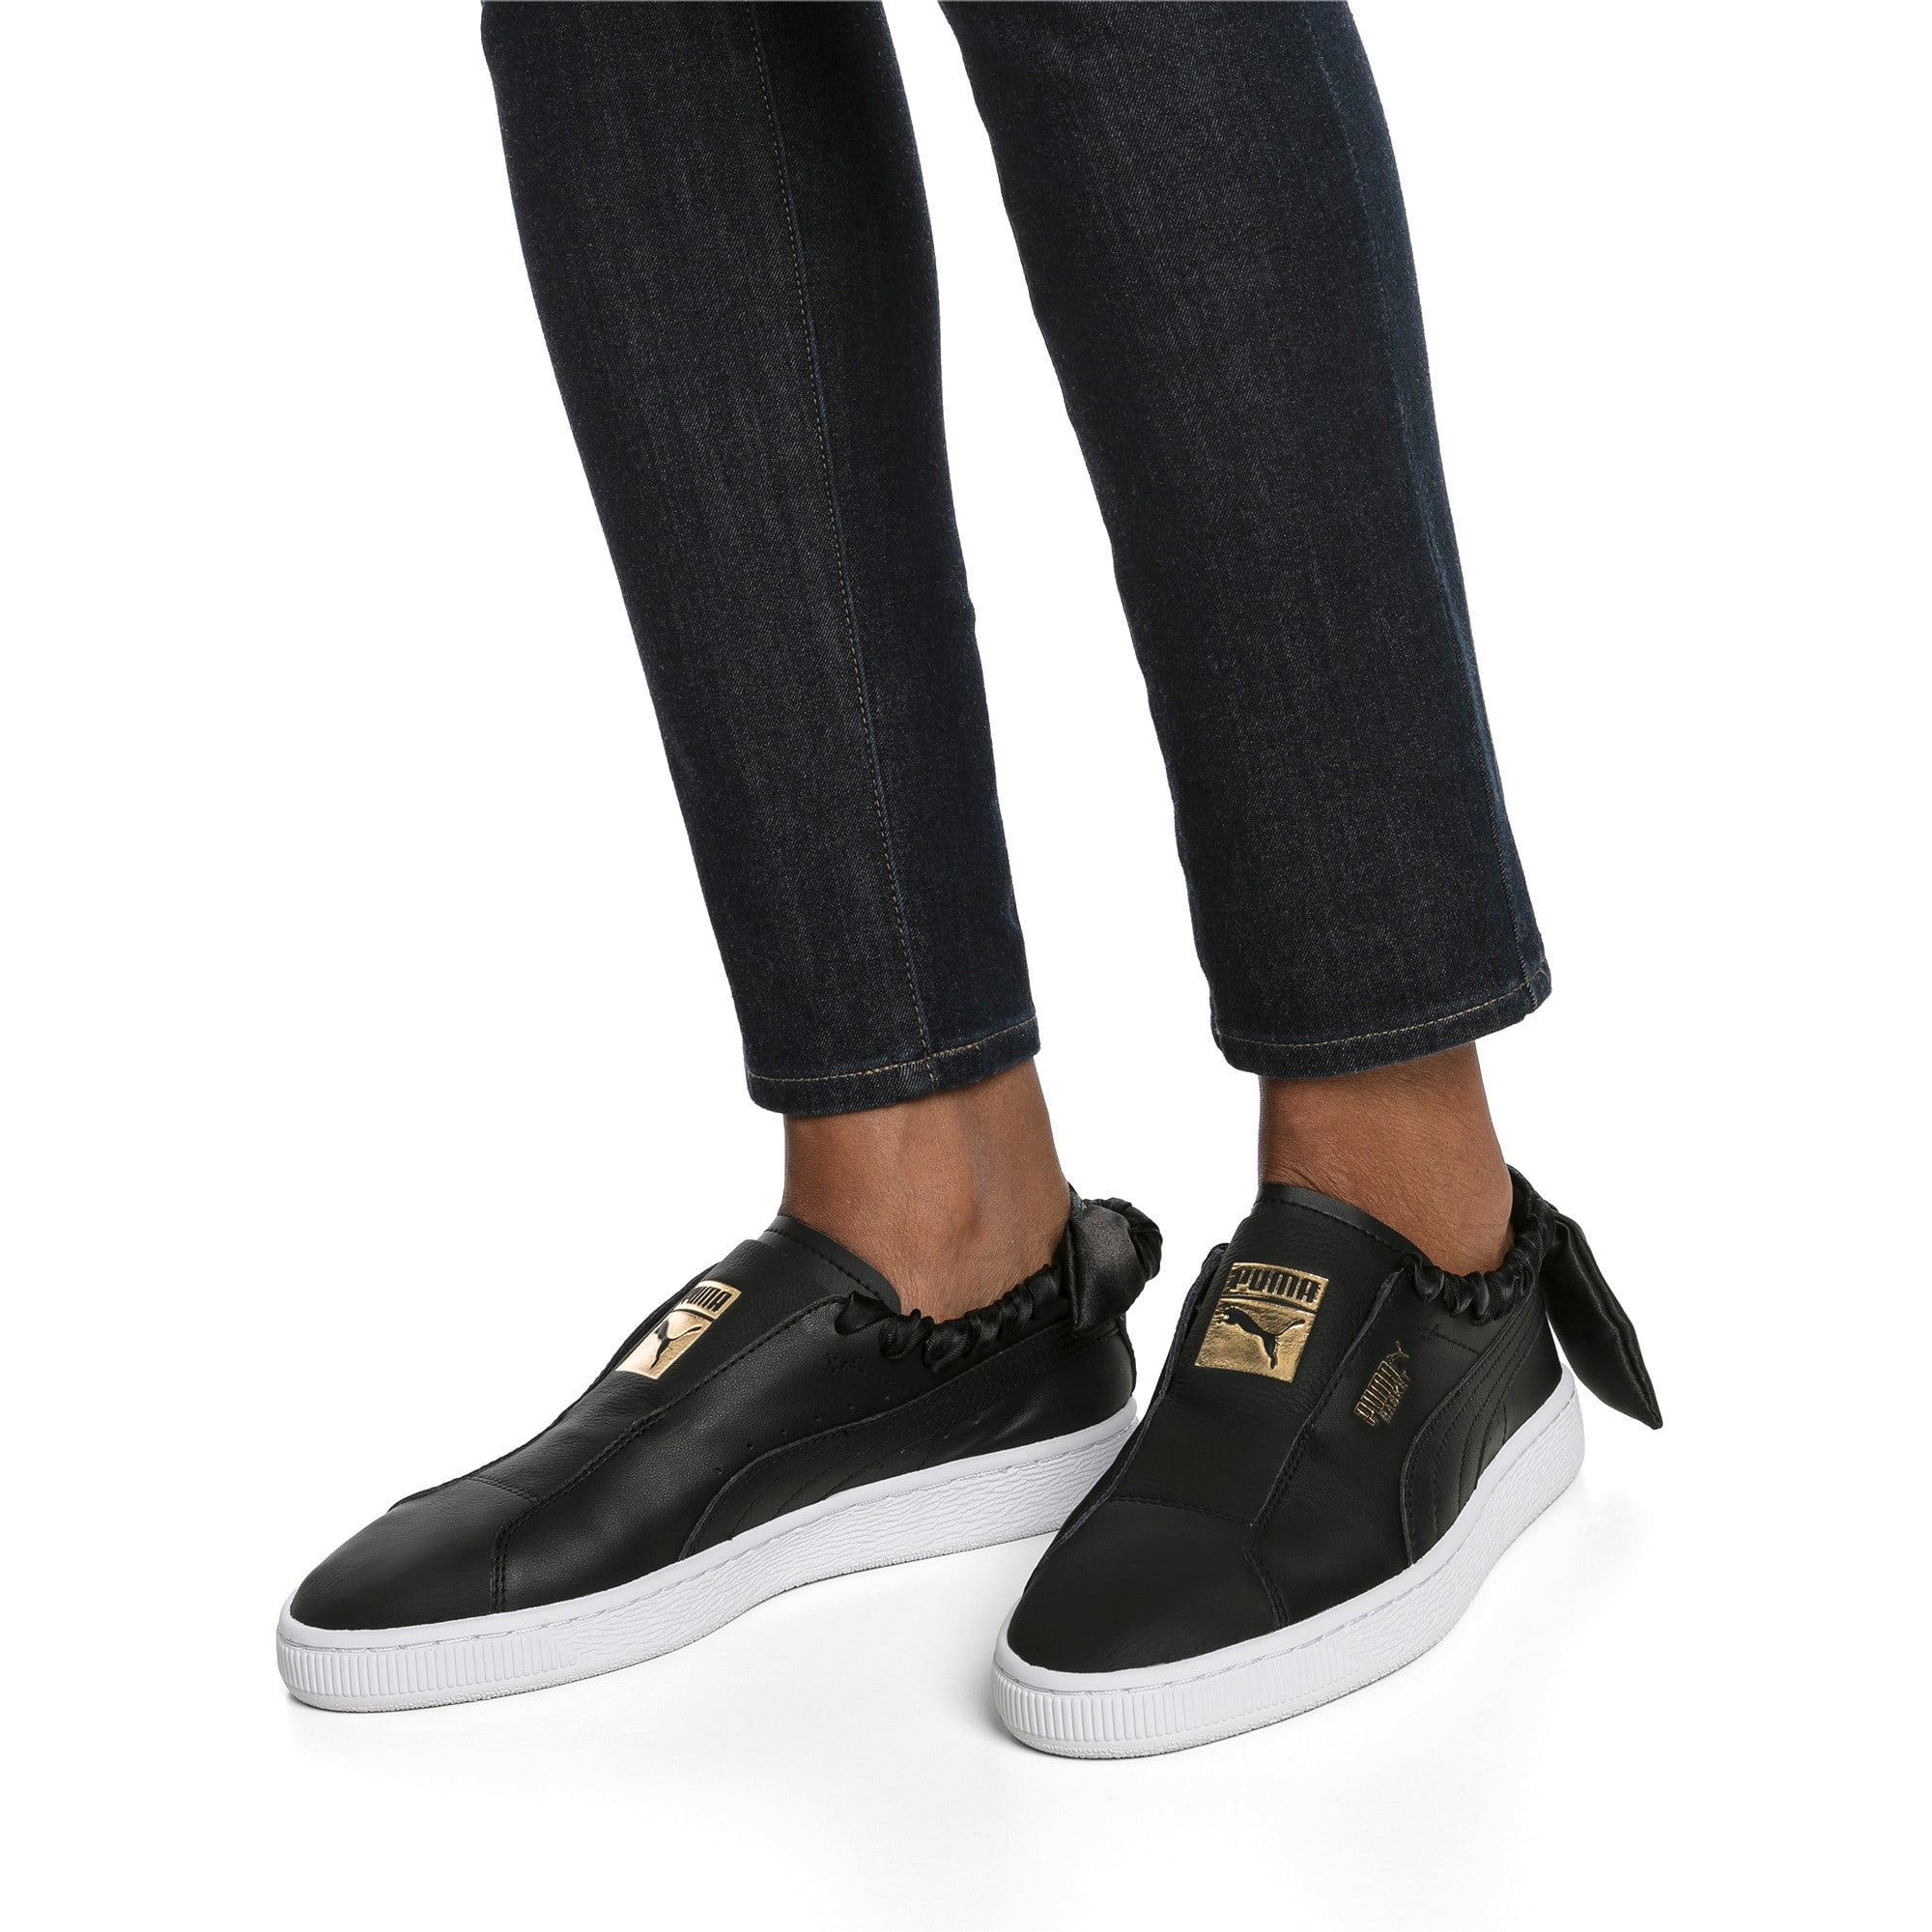 Thumbnail 2 of PUMA Basket Twist Women's Trainers, Puma Black-Puma Team Gold, medium-IND